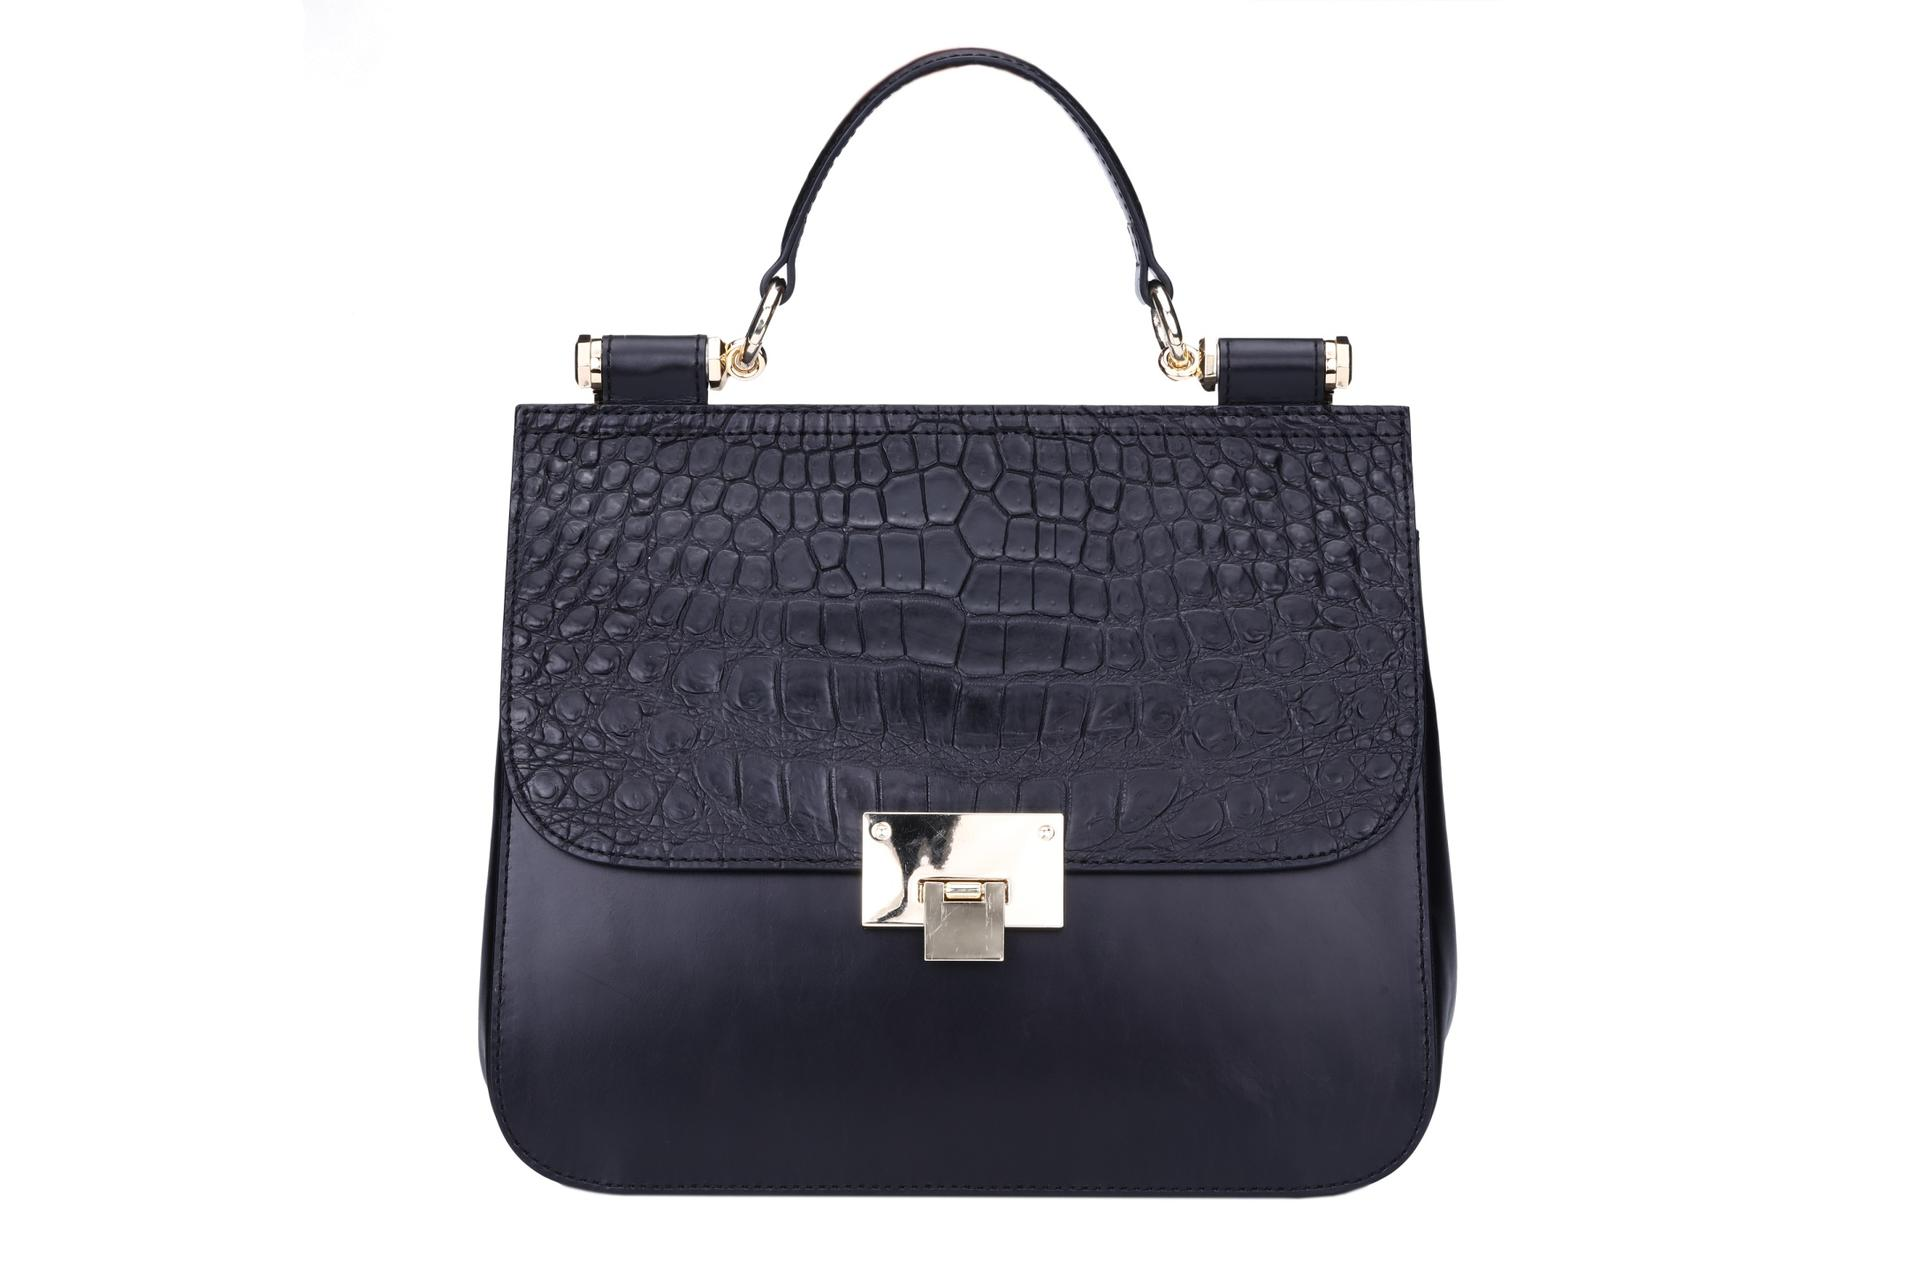 simple luxury handbags metal duffle for women